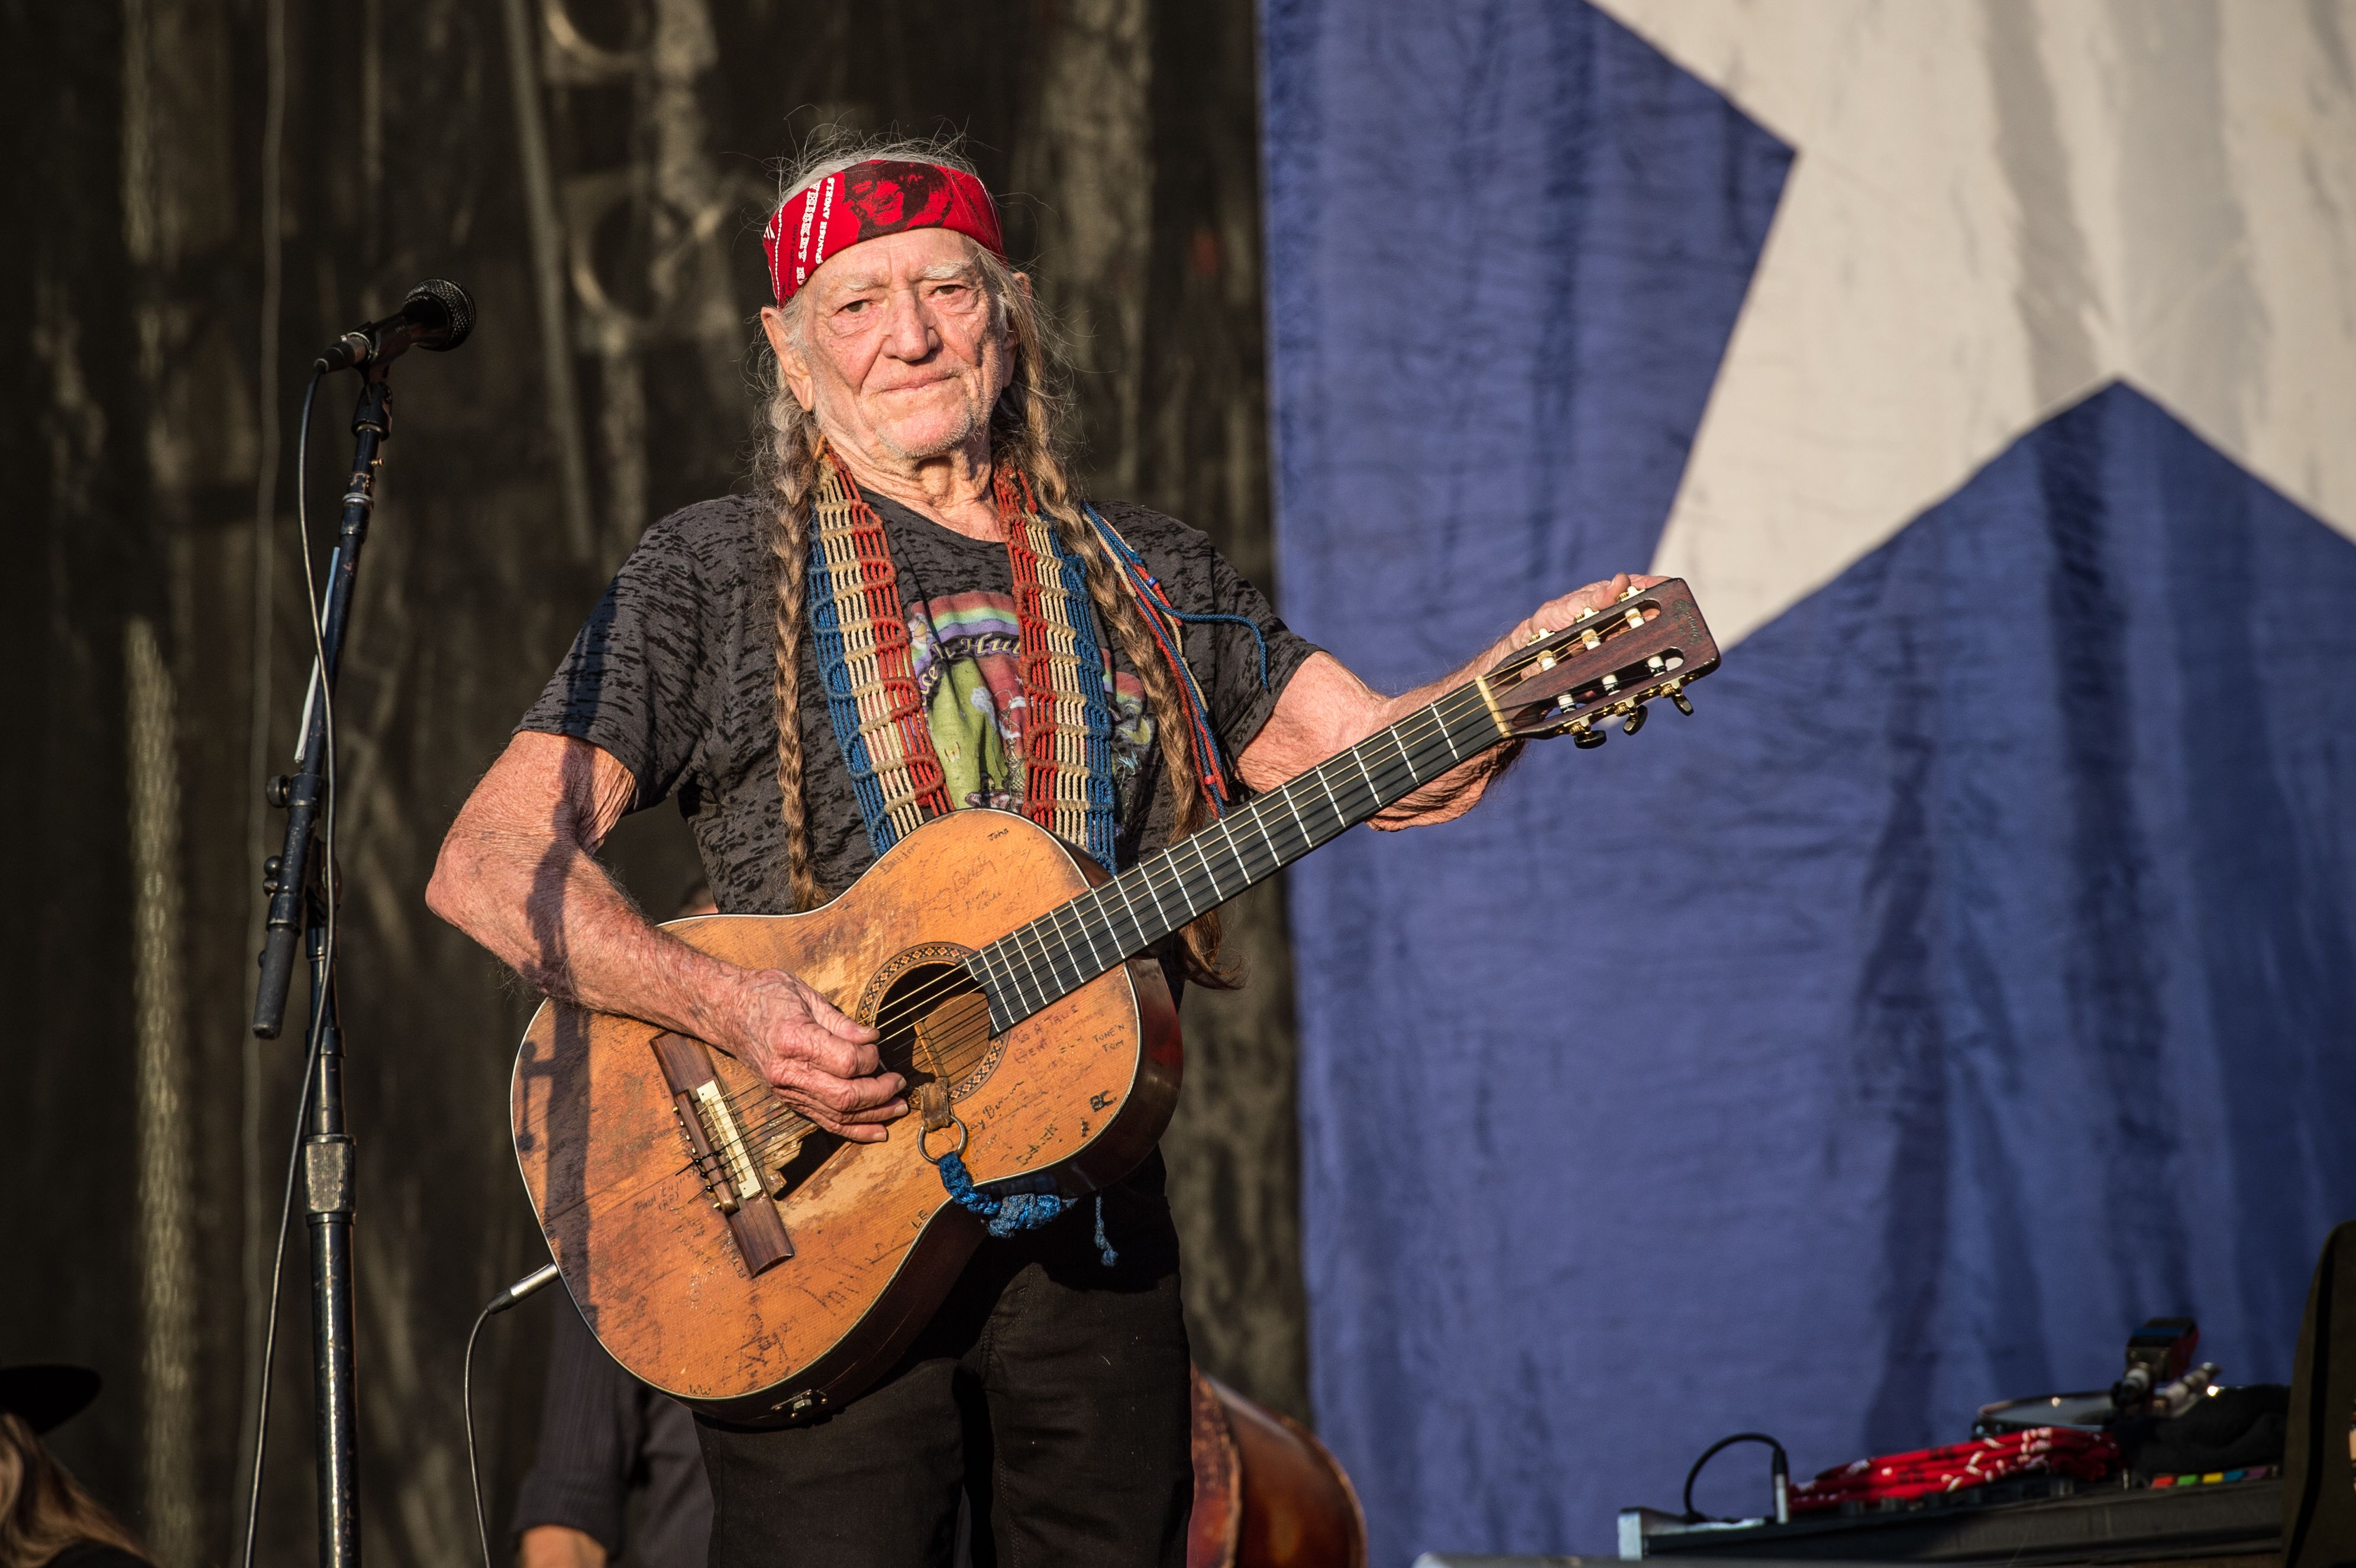 Willie Nelson's 4th of July Picnic: How to Listen